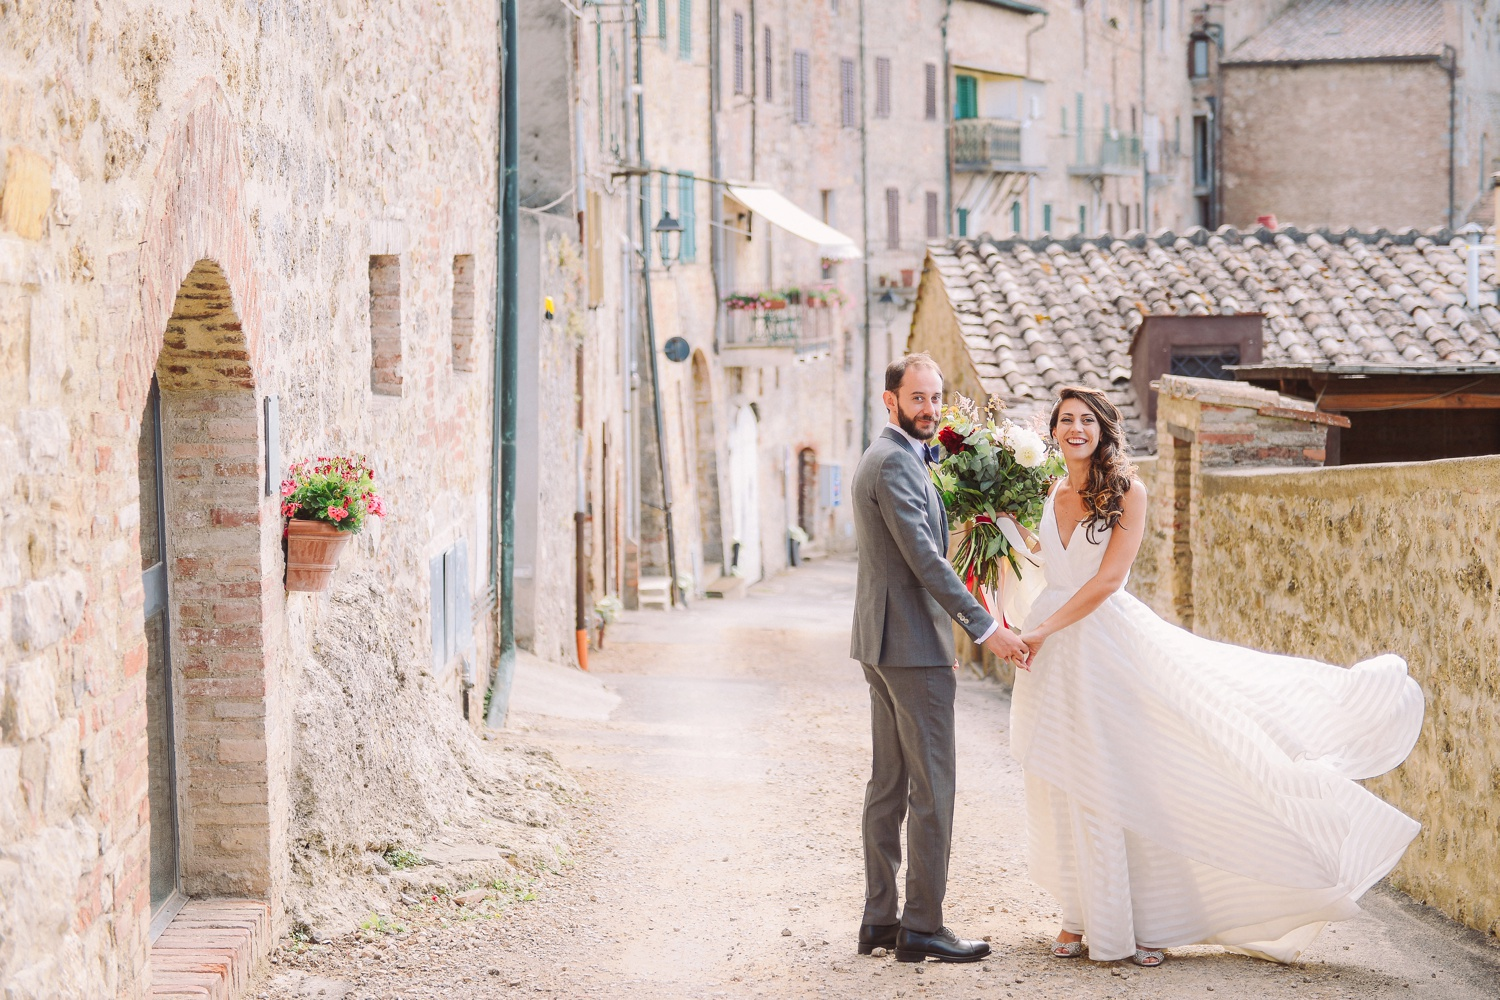 landvphotography-wedding-photographer-tuscany_1878.jpg